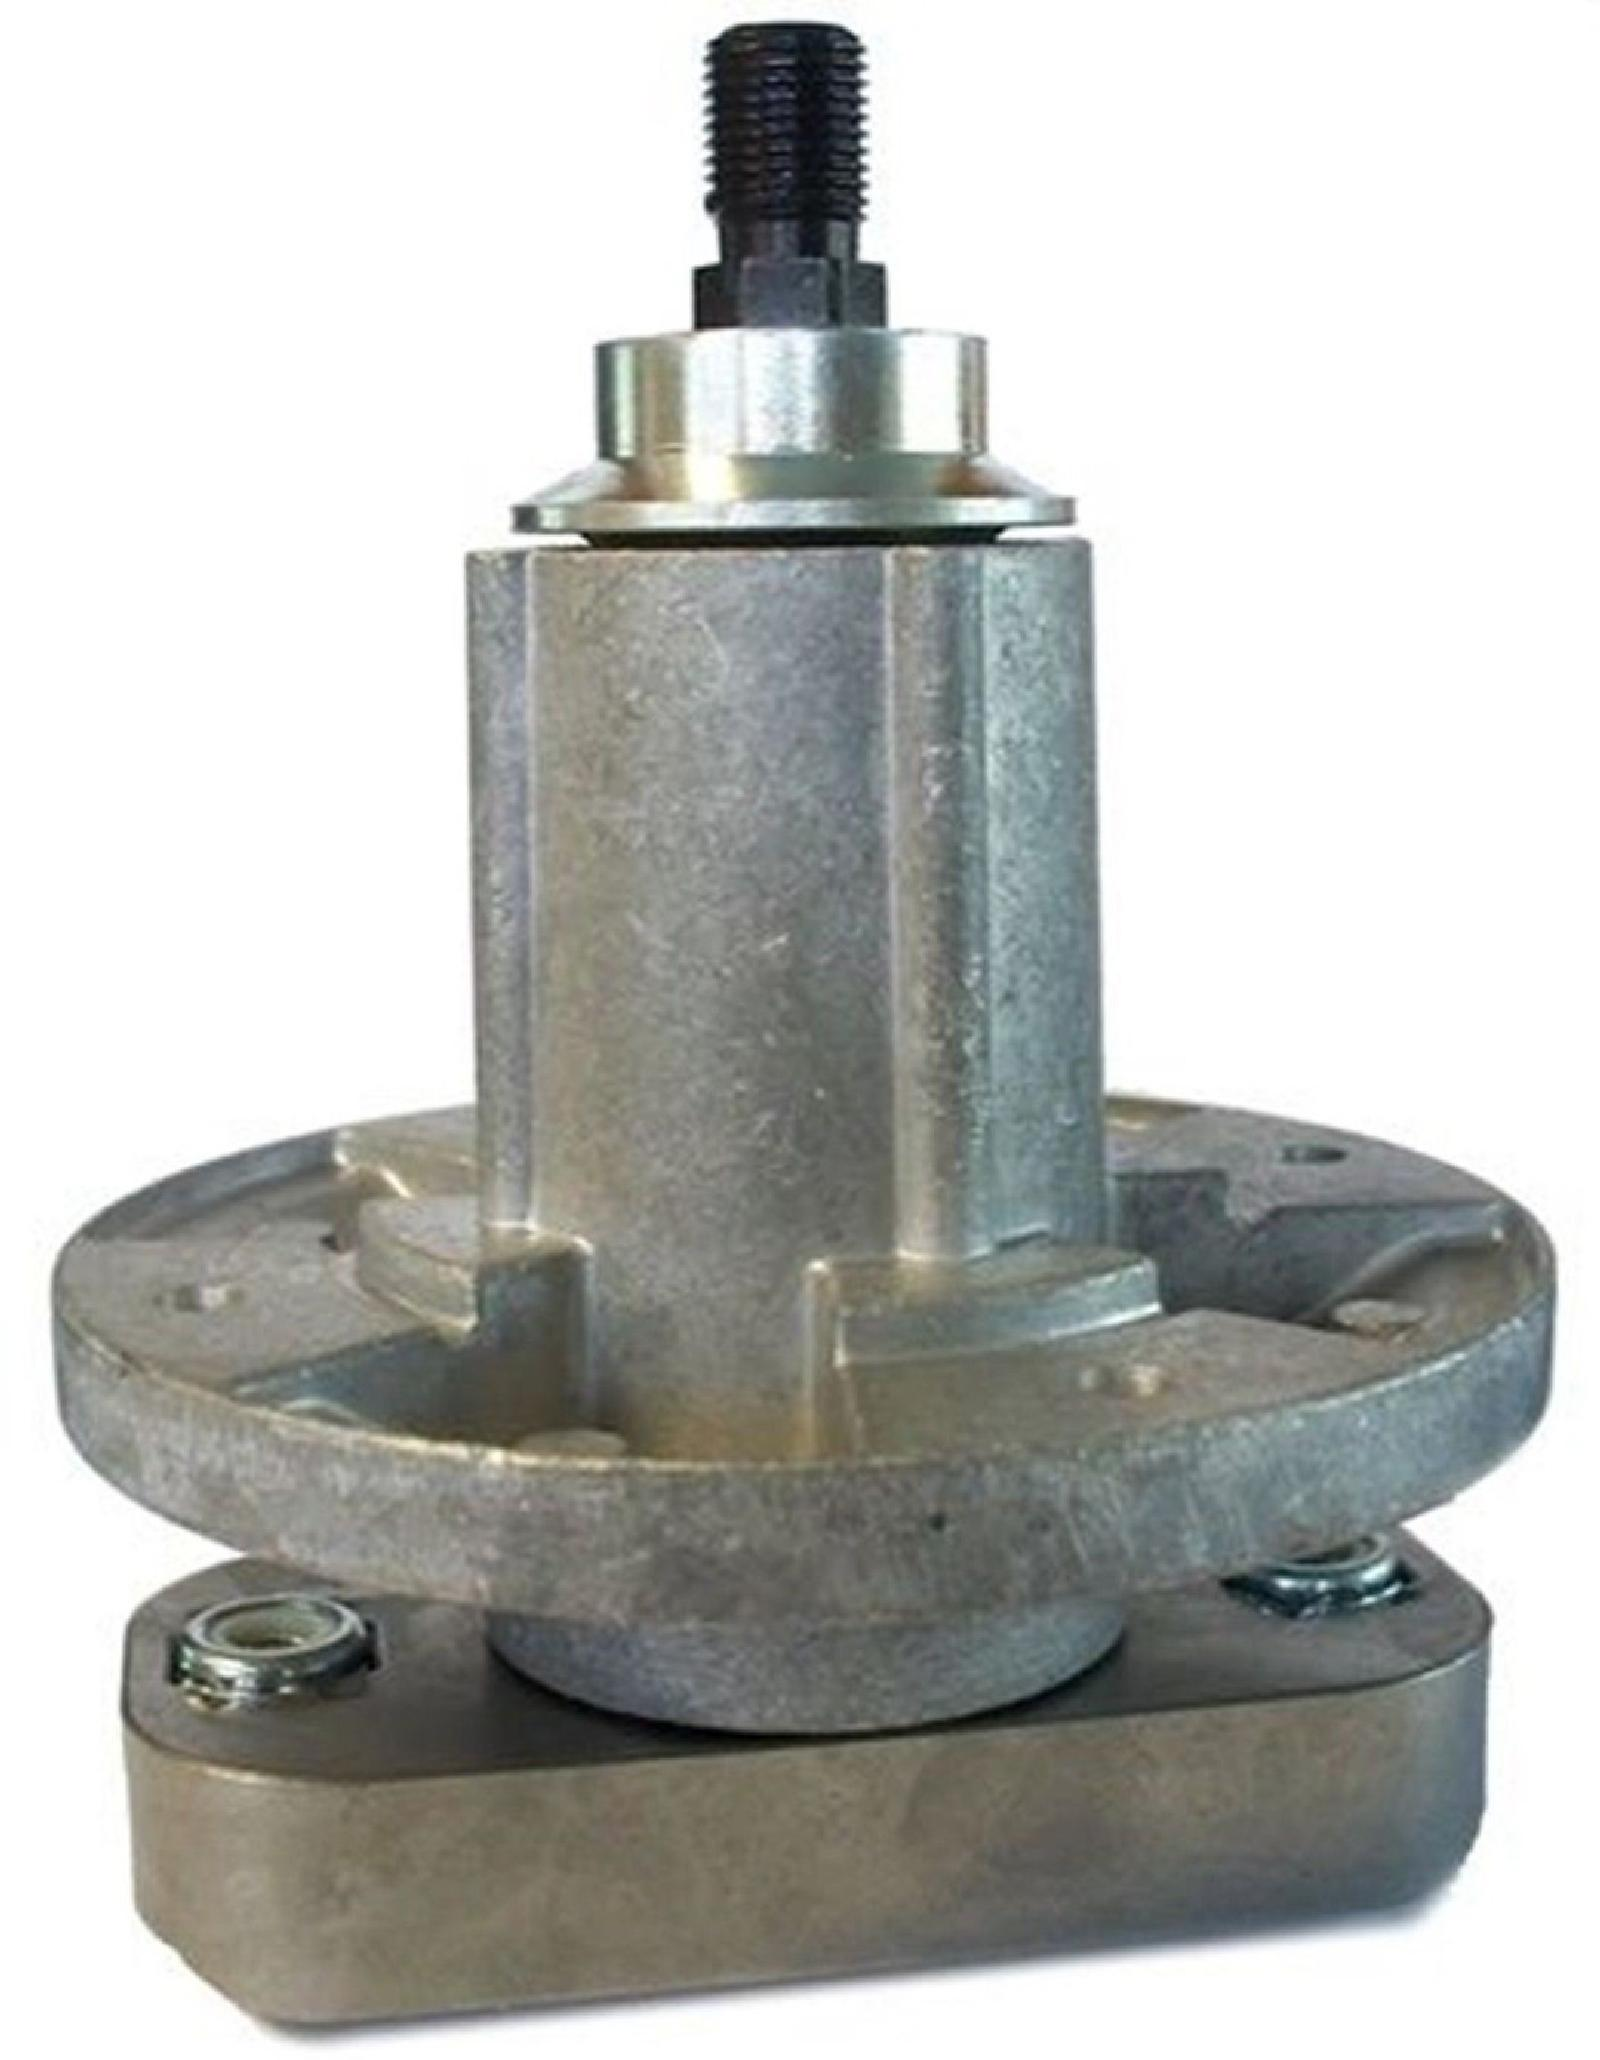 Mower Spindle replaces John Deere GY20050